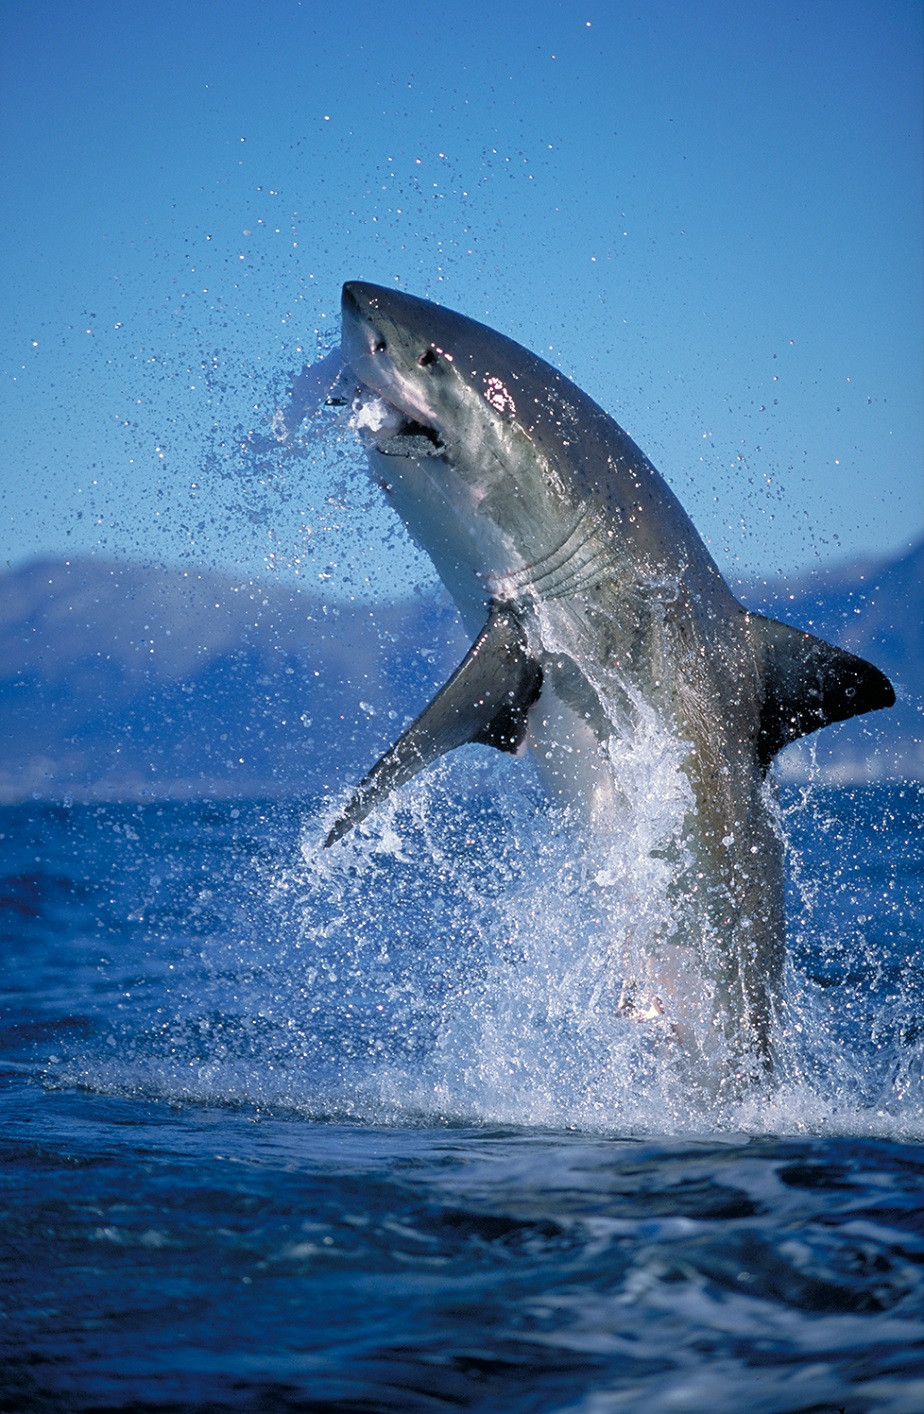 white shark jumping out of the water by wix photographer amos nachoum